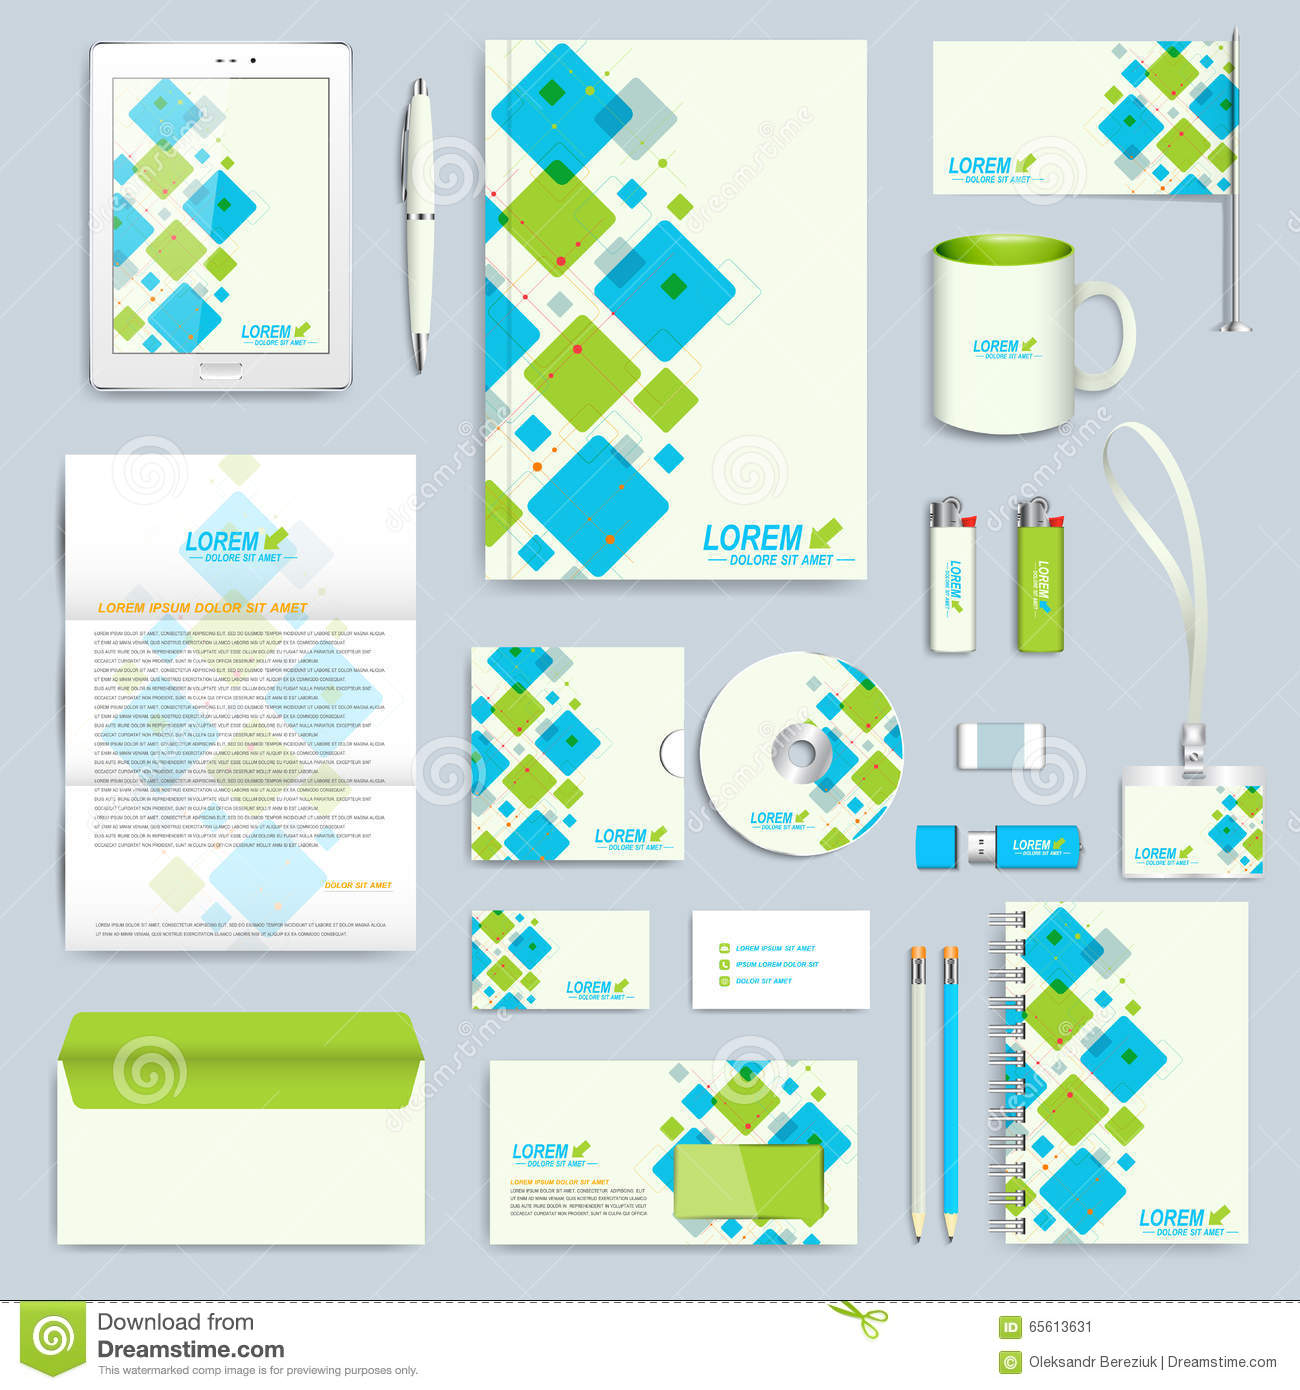 Blank Stationery And Corporate Identity Template Consist: Set Of Vector Corporate Identity Template. Modern Business